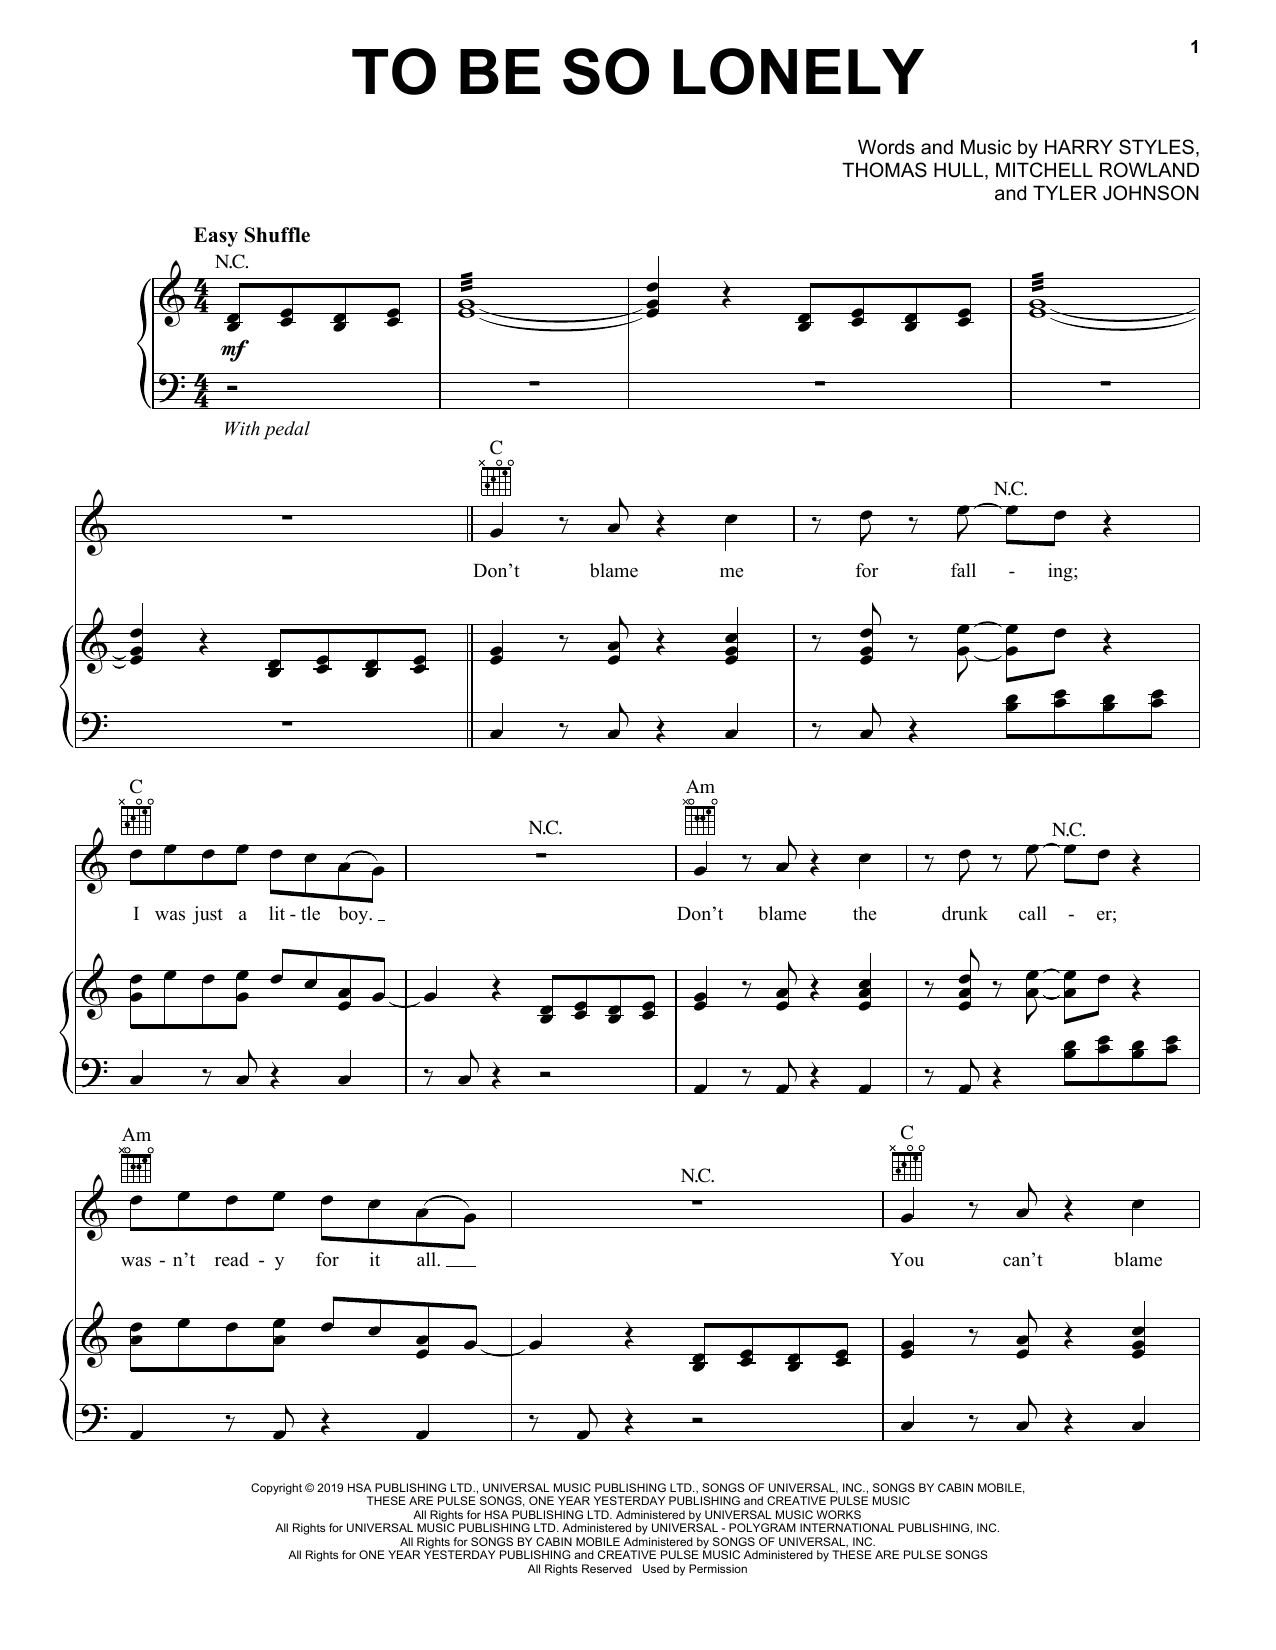 Download Harry Styles 'To Be So Lonely' Digital Sheet Music Notes & Chords and start playing in minutes